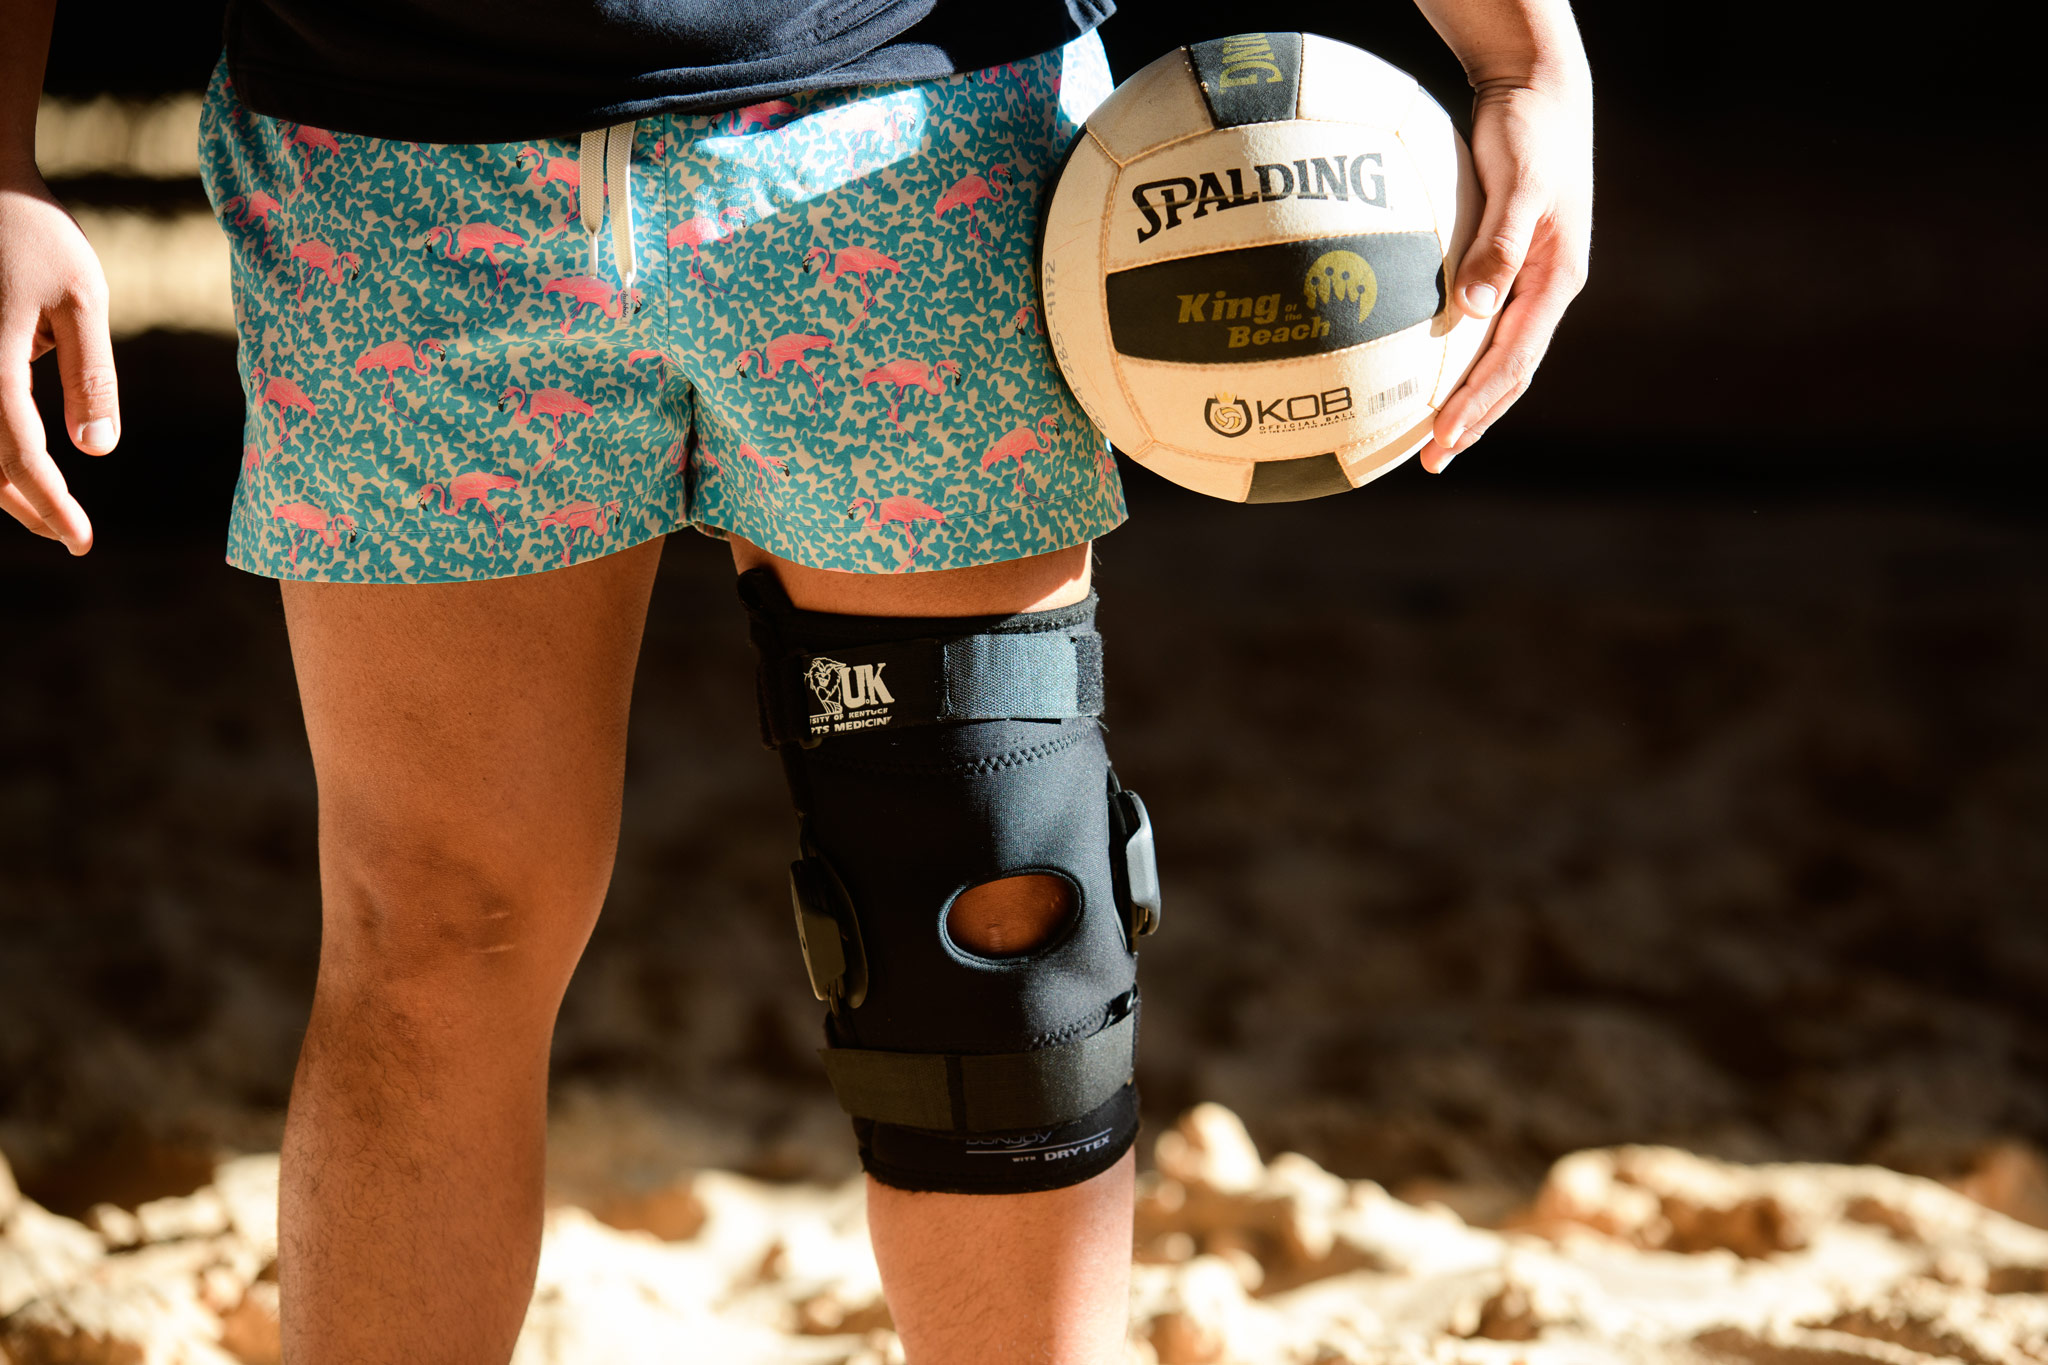 Gil's left knee has a black knee brace over it while he holds a volleyball against his left hip.